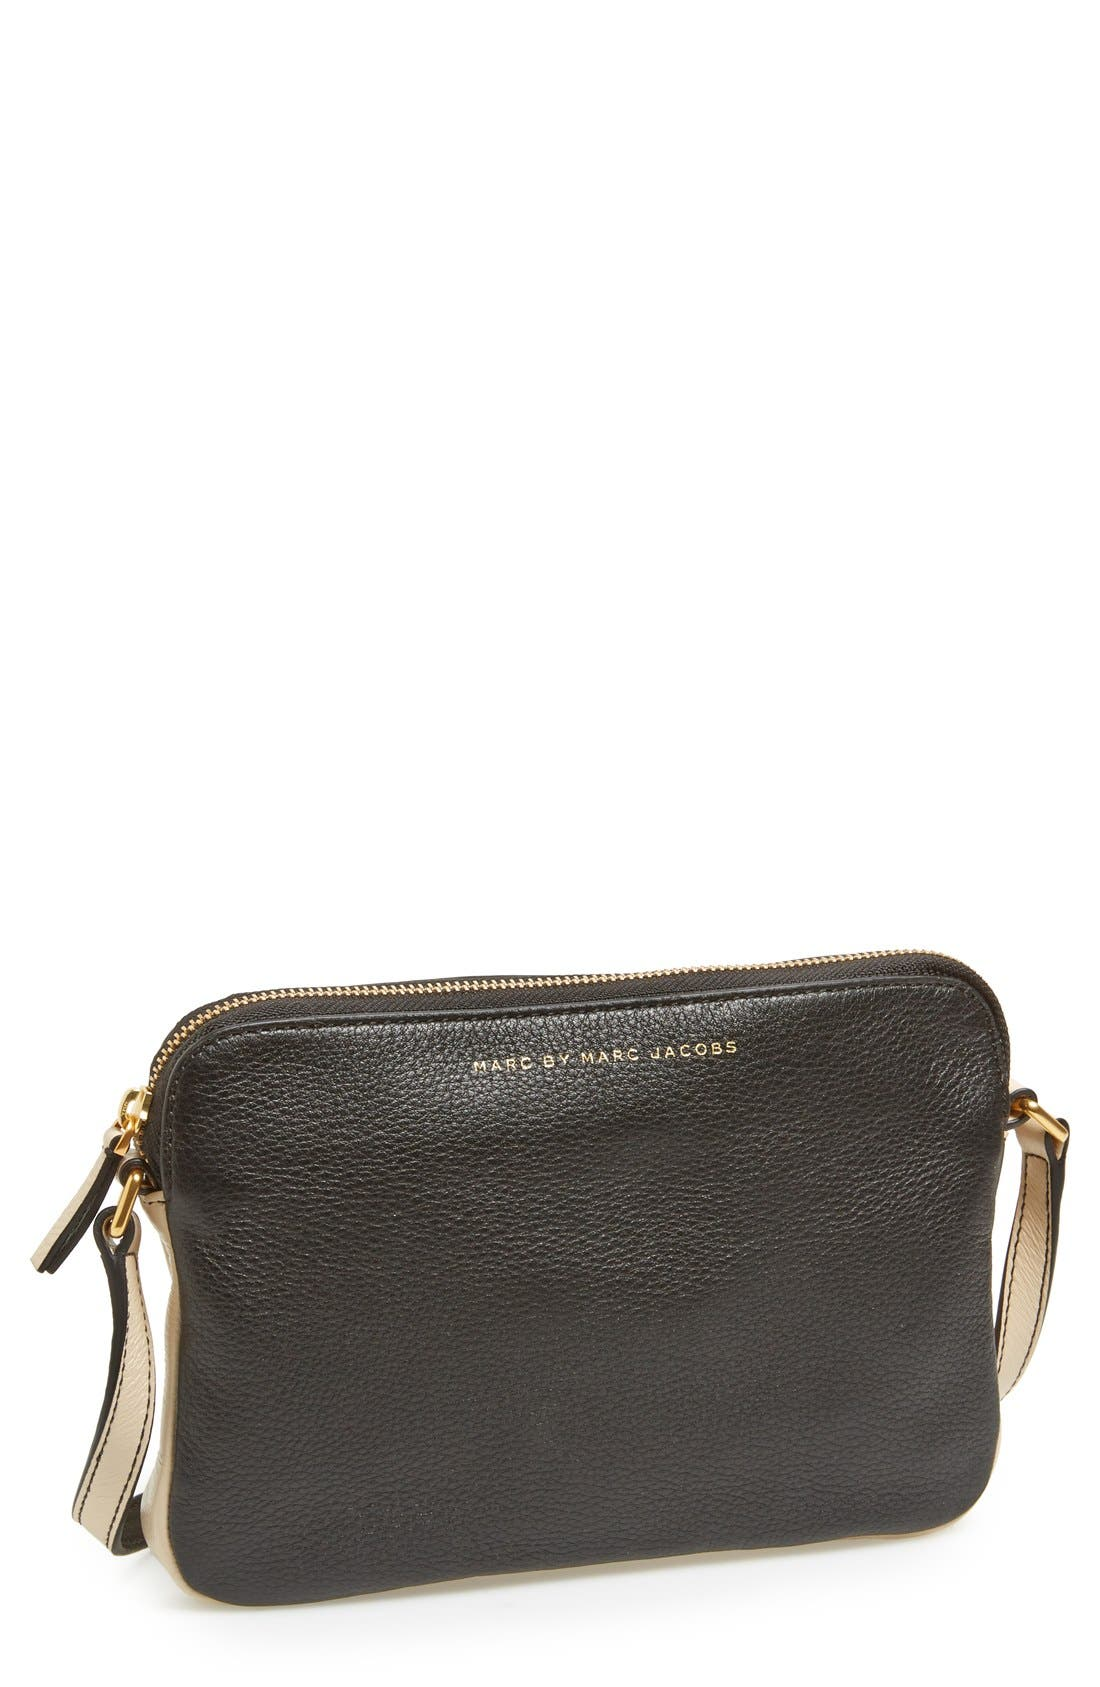 Main Image - MARC BY MARC JACOBS 'Sophisticato Dani' Leather Crossbody Bag